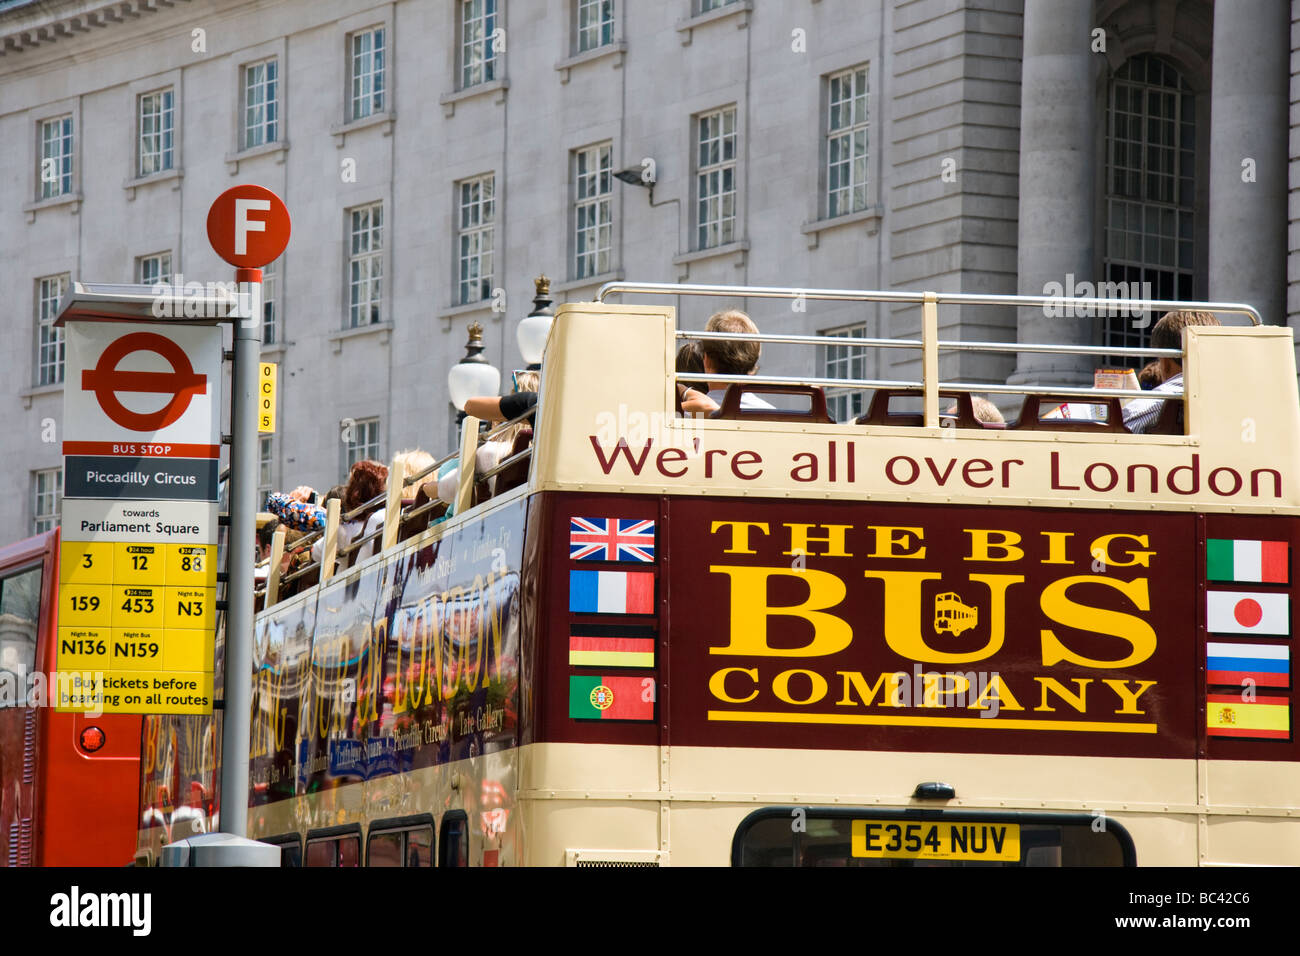 The Big Bus Company open top bus Regent Street London England UK - Stock Image